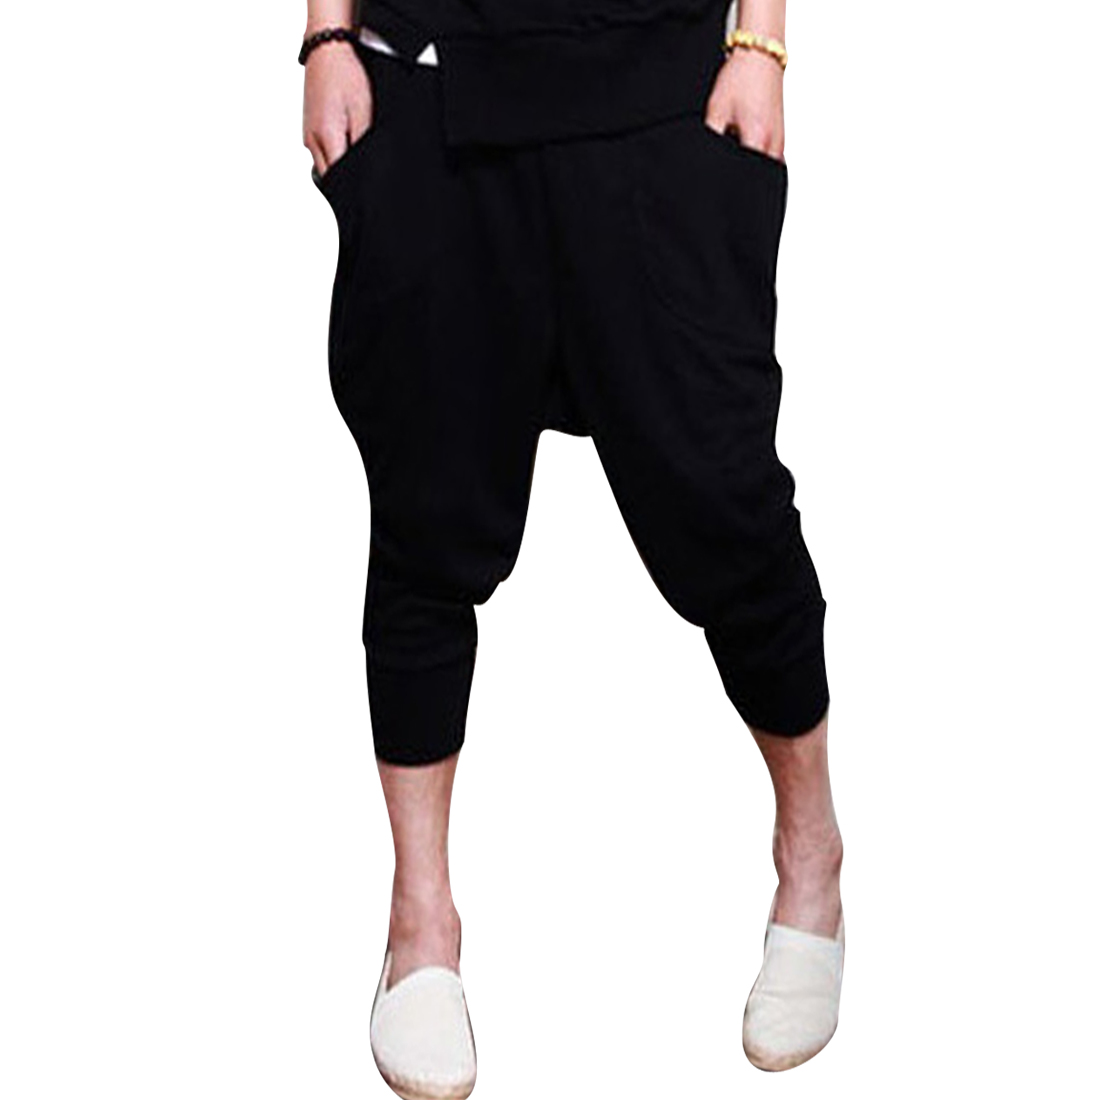 Stylish Men Stretchy Waist Pockets Front Capris Pants Black W28